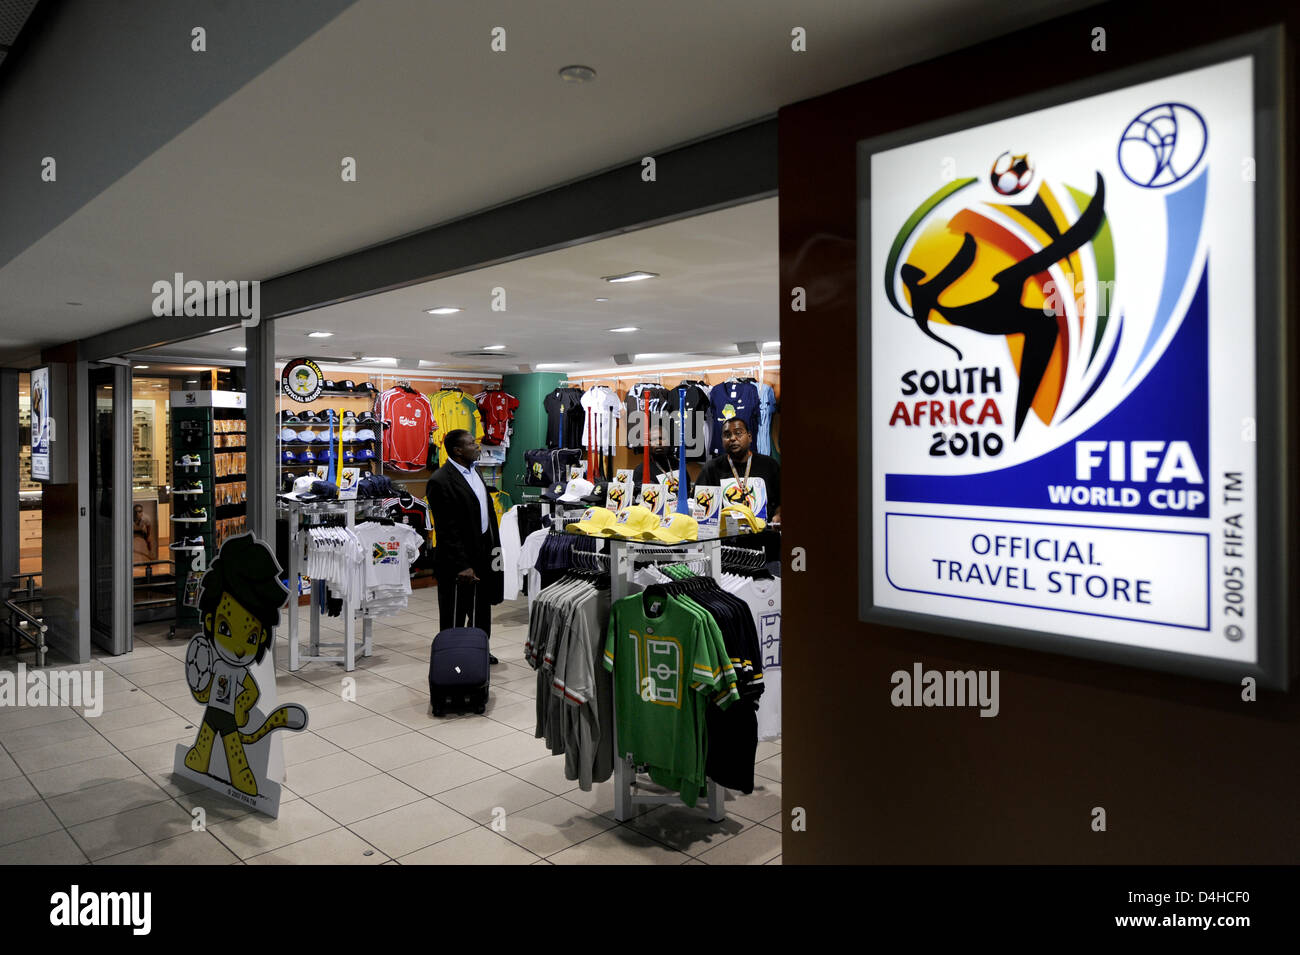 d7b5d2be3 View into an official merchandise store for the 2010 FIFA World Cup South  Africa in Durban